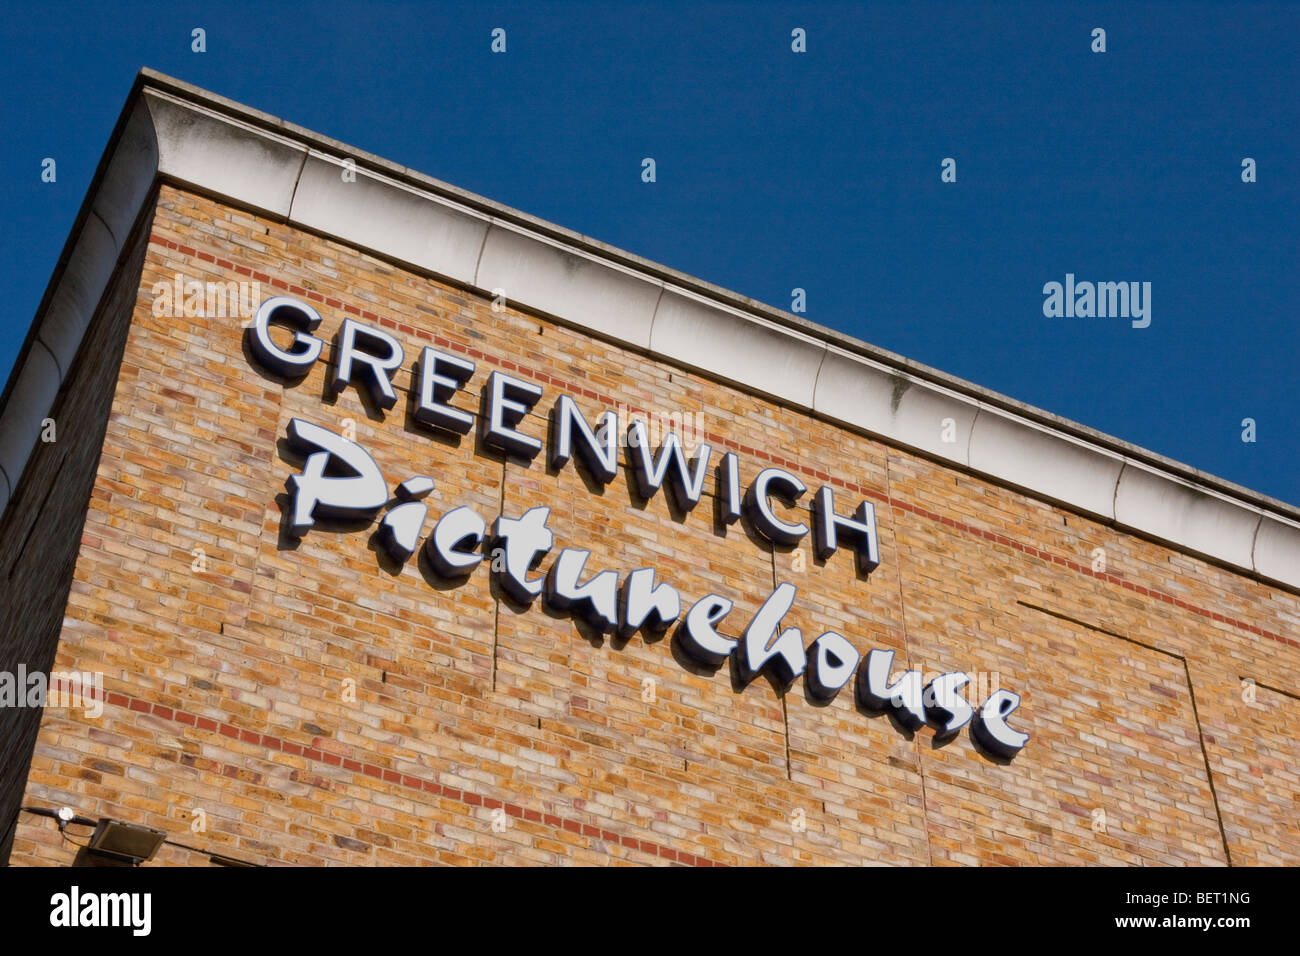 Greenwich Picturehouse sign, London UK. - Stock Image